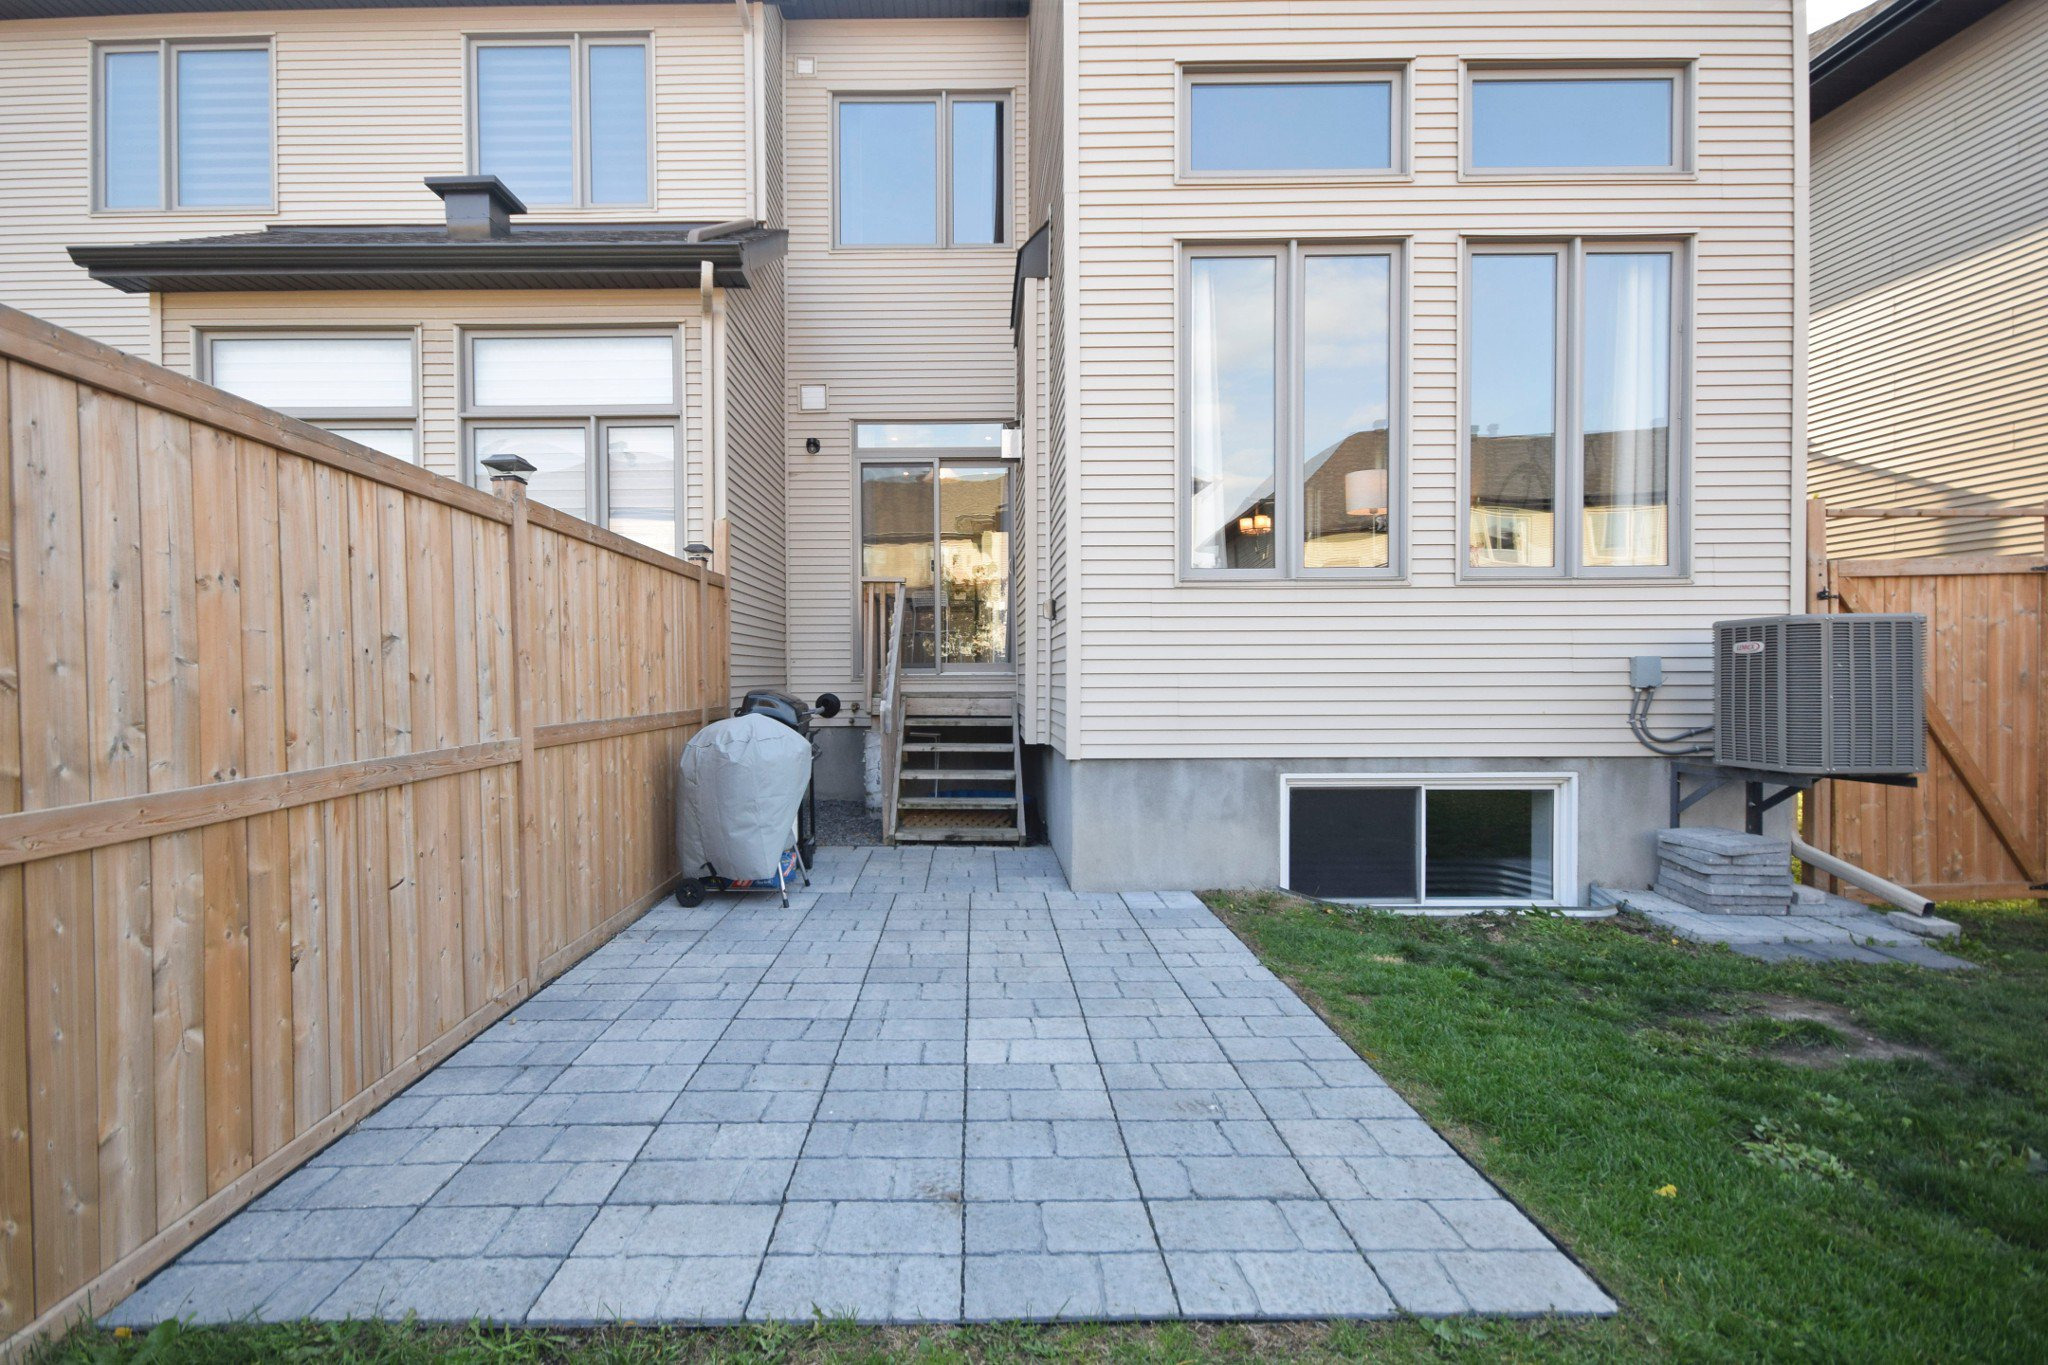 Photo 67: Photos: 131 Popplewell Crescent in Ottawa: Cedargrove / Fraserdale House for sale (Barrhaven)  : MLS®# 1130335